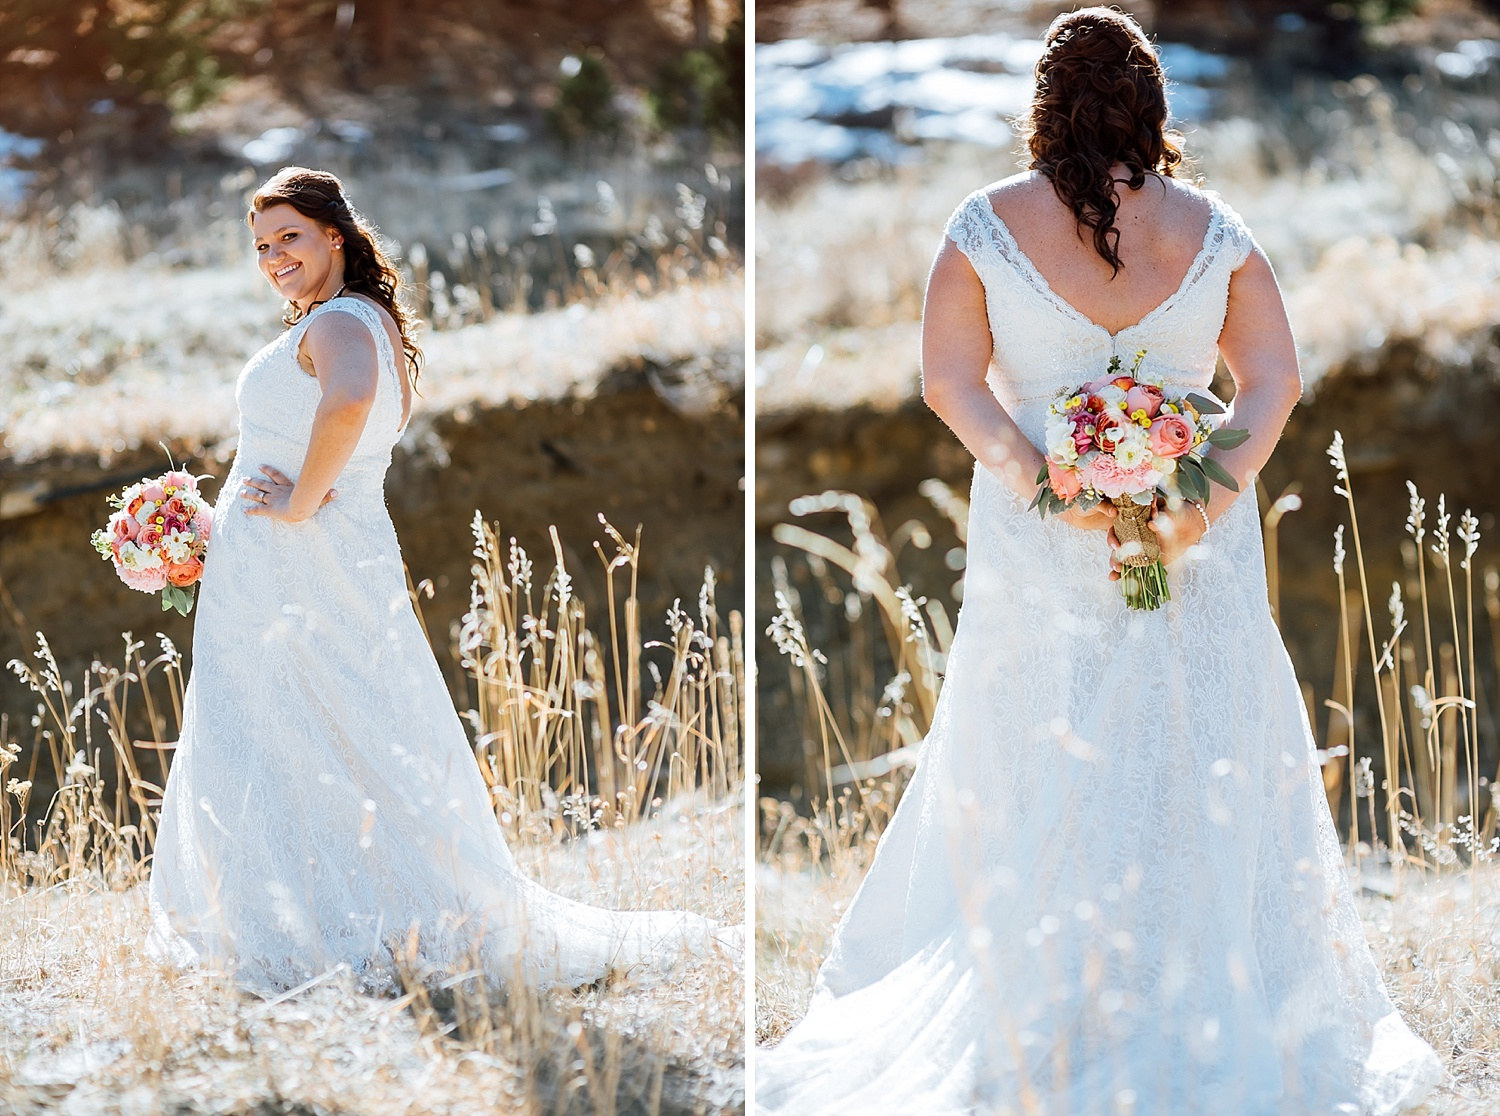 I love the colors in the bouquet! Such a nice contrast to the dress. Also love how beautiful this mountain location is!Photo by Maddie Mae Photography